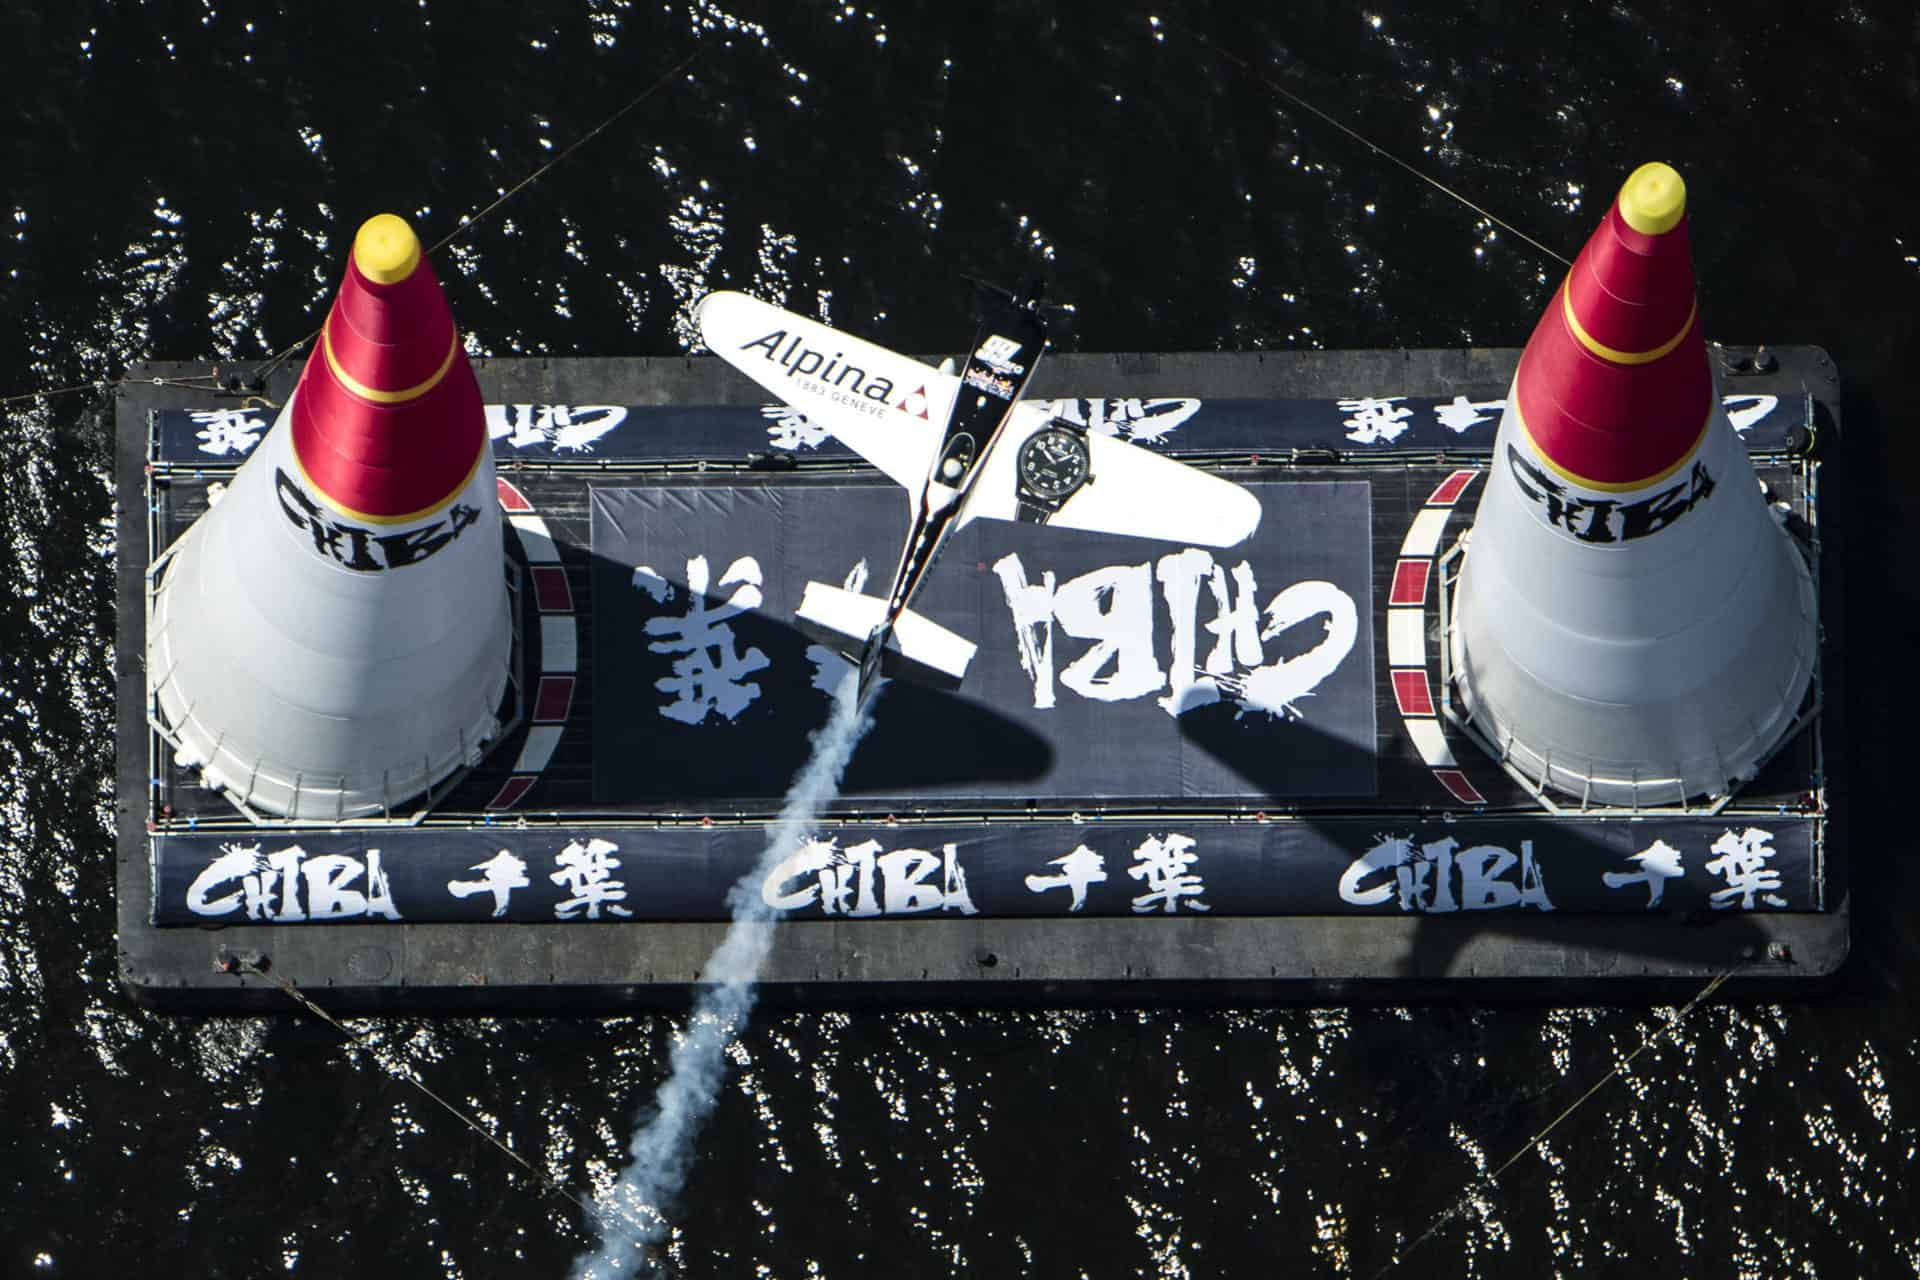 Red Bull Air Race World Championship Round 3 in Chiba: Amazing performance